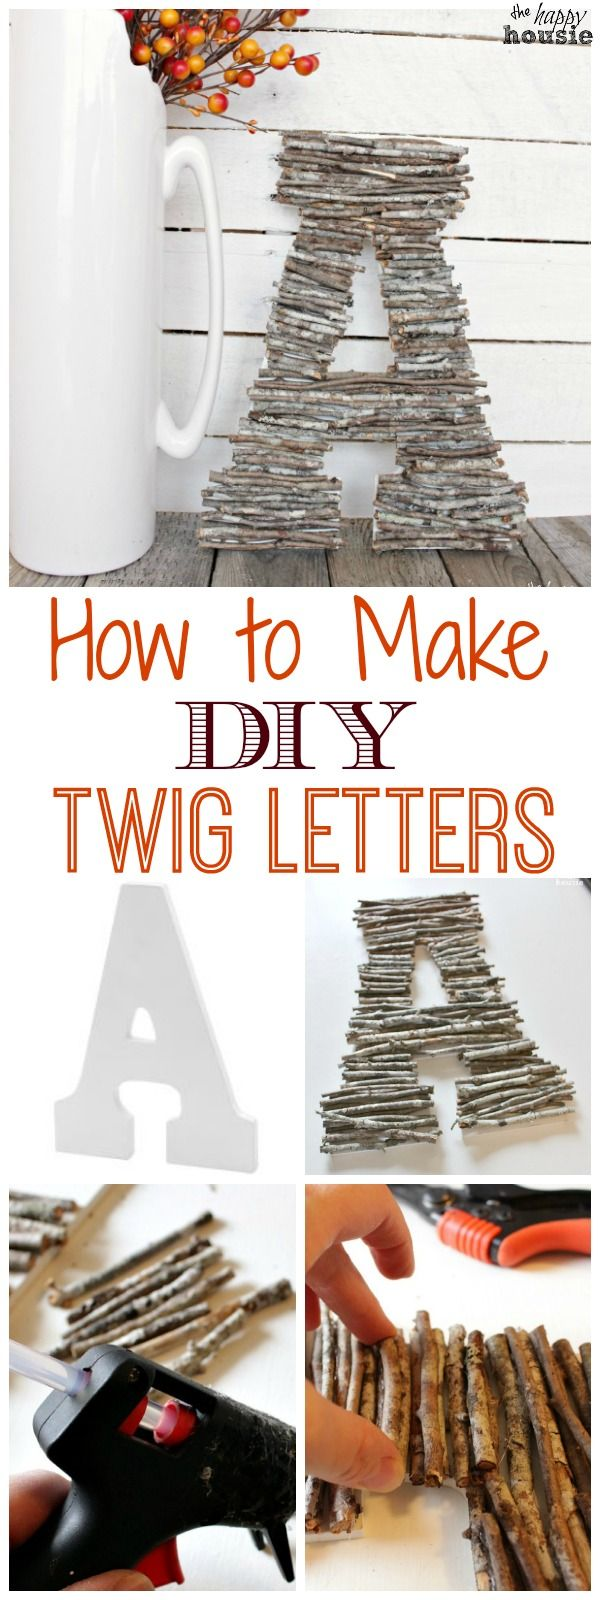 How to make your own easy DIY Twig Letters - Twig Monogram how to tutorial at The Happy Housie